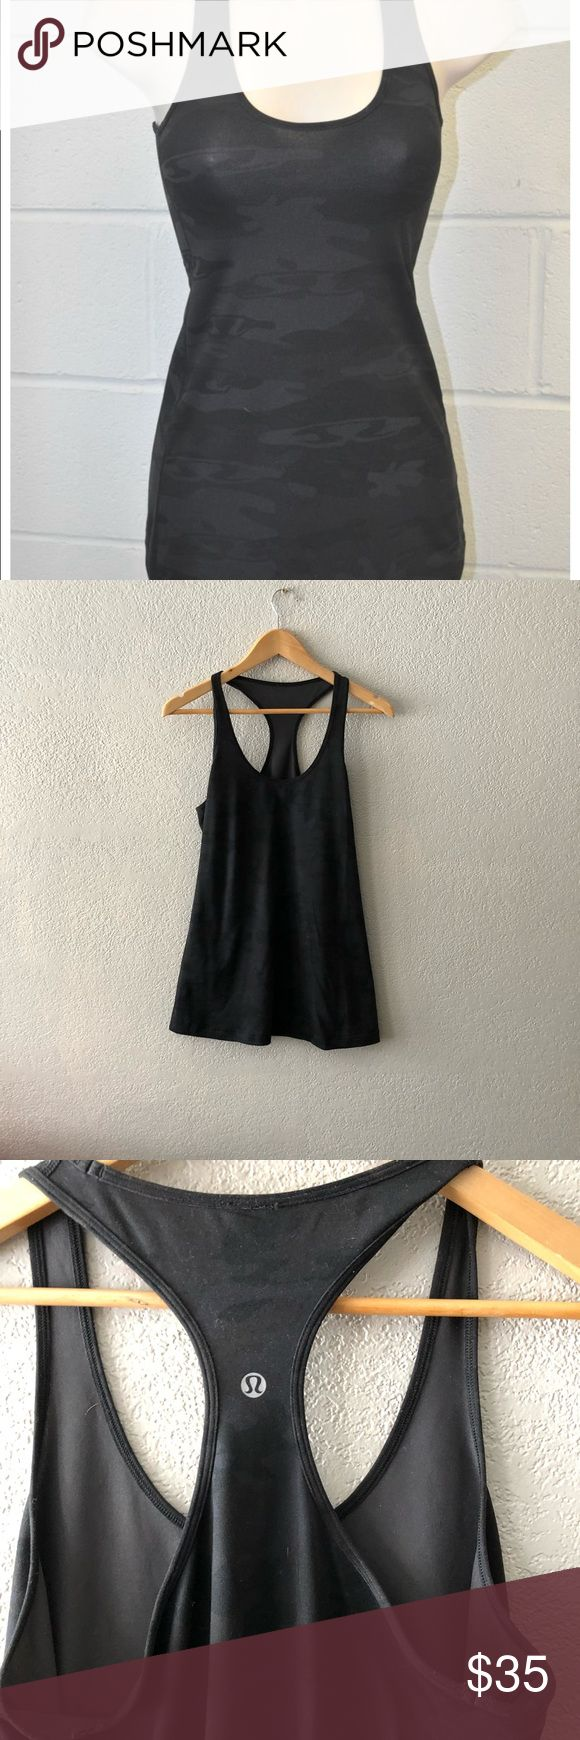 LuluLemon black camo tank top size 12 Excellent condition!!!  Approximately 18 inch bust, 29.5 inches long All measurements taken laying flat lululemon athletica Tops Tank Tops